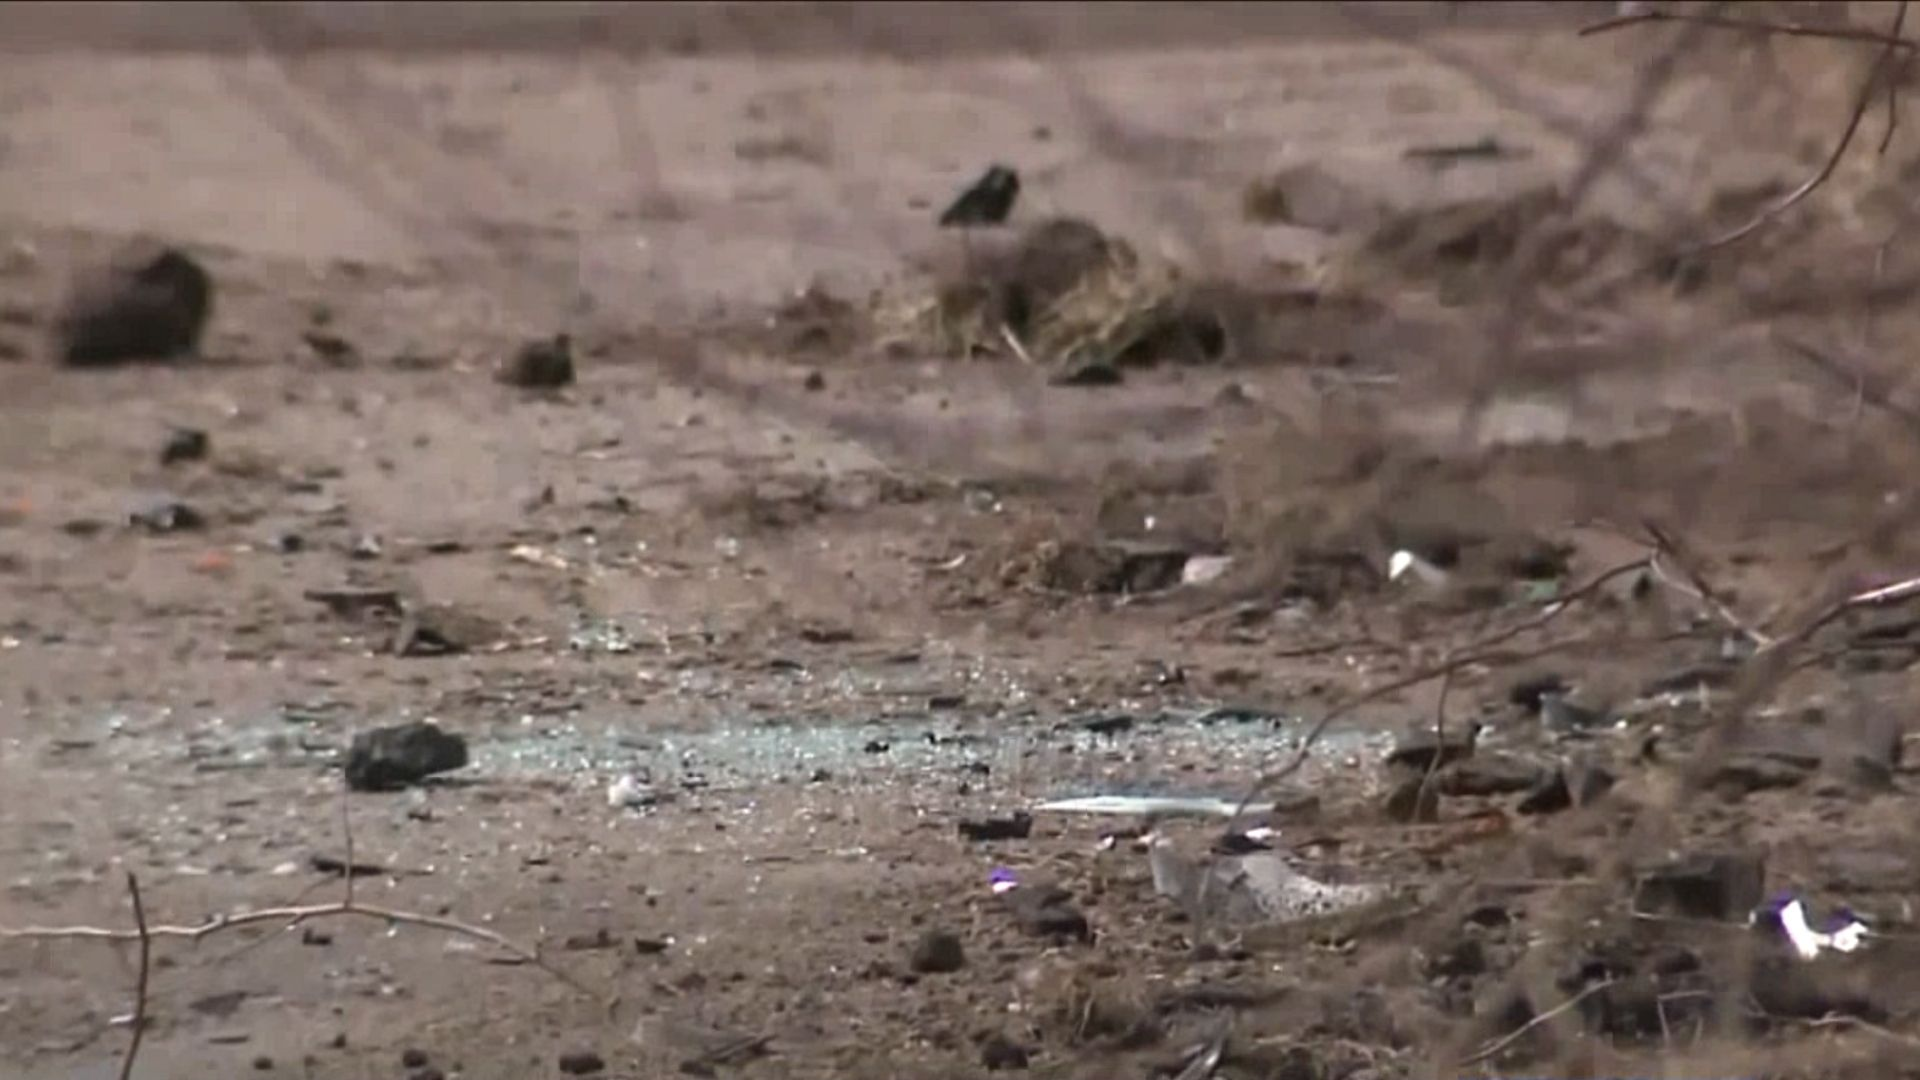 Scene of a February 2019 deadly crash that left a couple and teenage boy dead after a police chase on Long Island. (PIX11 News)